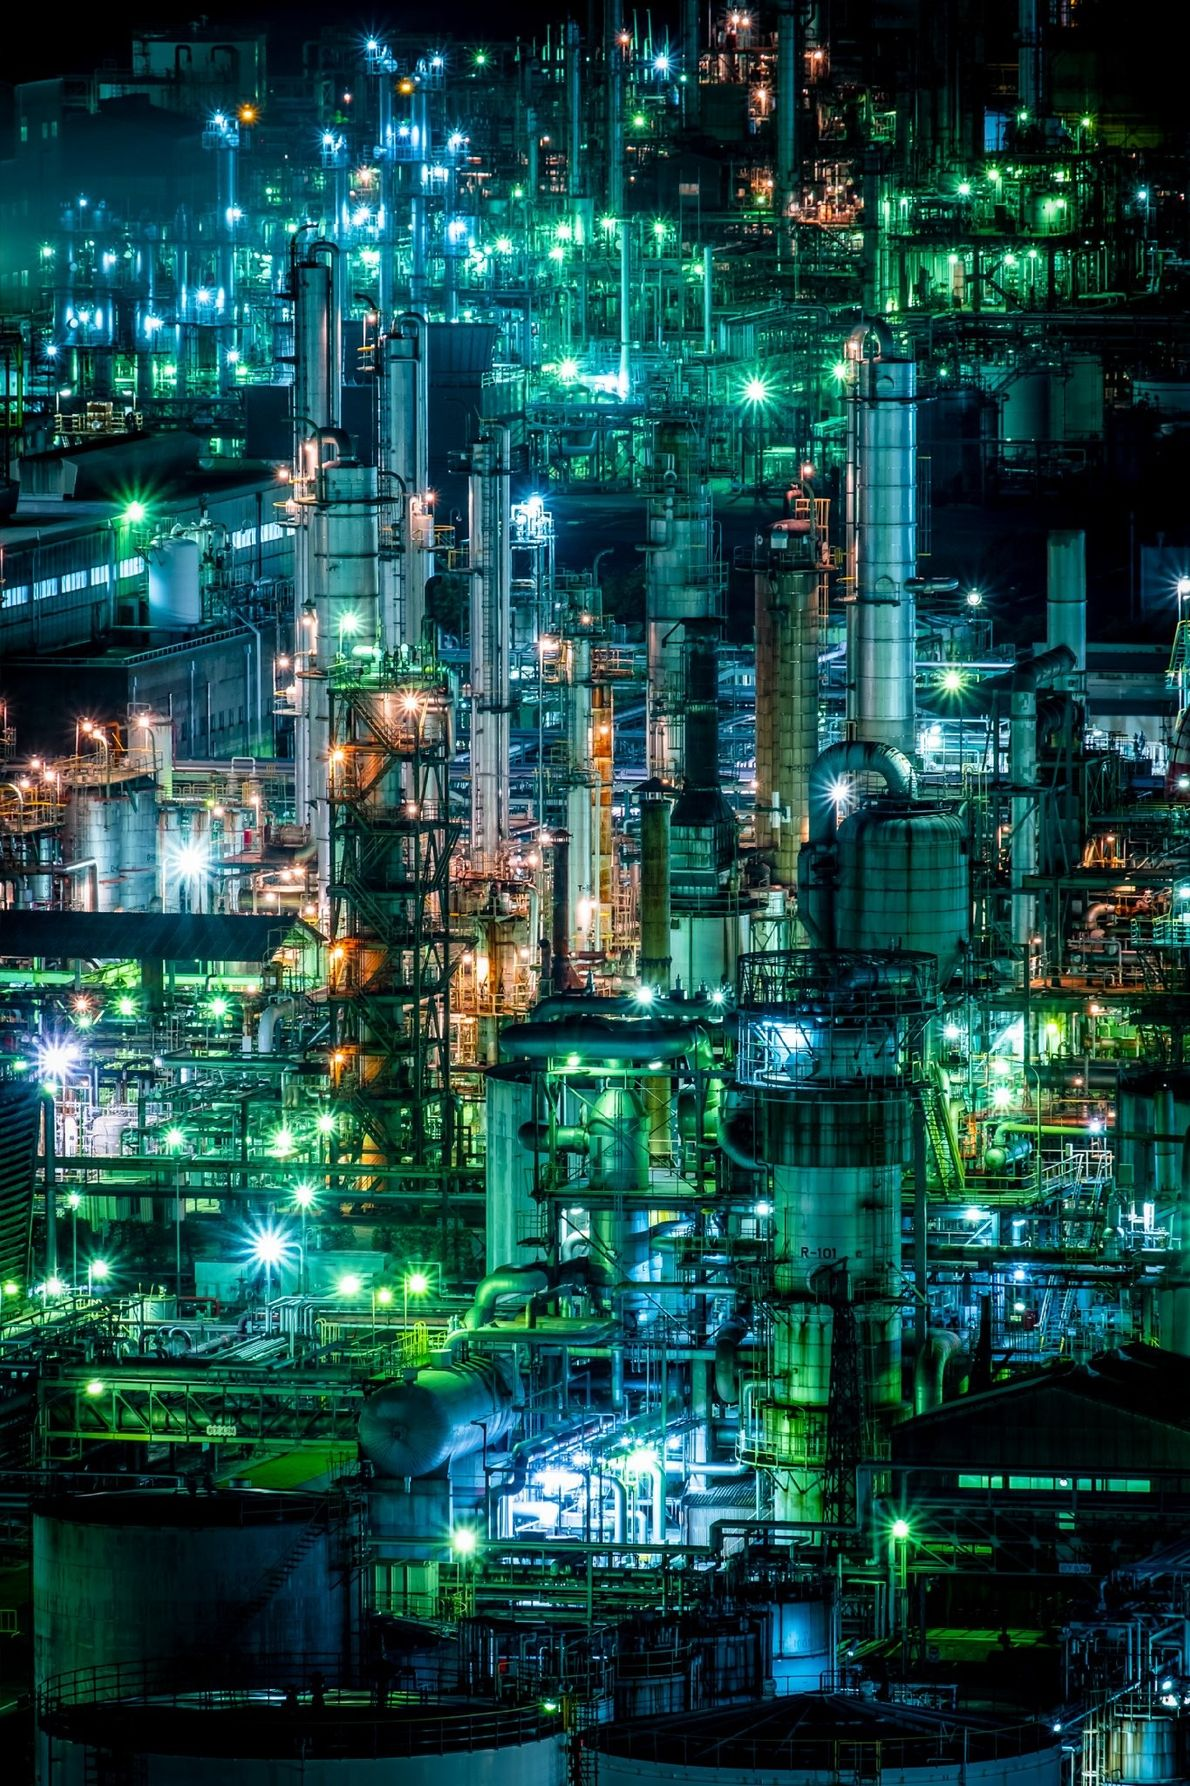 Your Shot photographer Michael Vong documented this industrial scene in Tokyo reminiscient of a science fiction ...